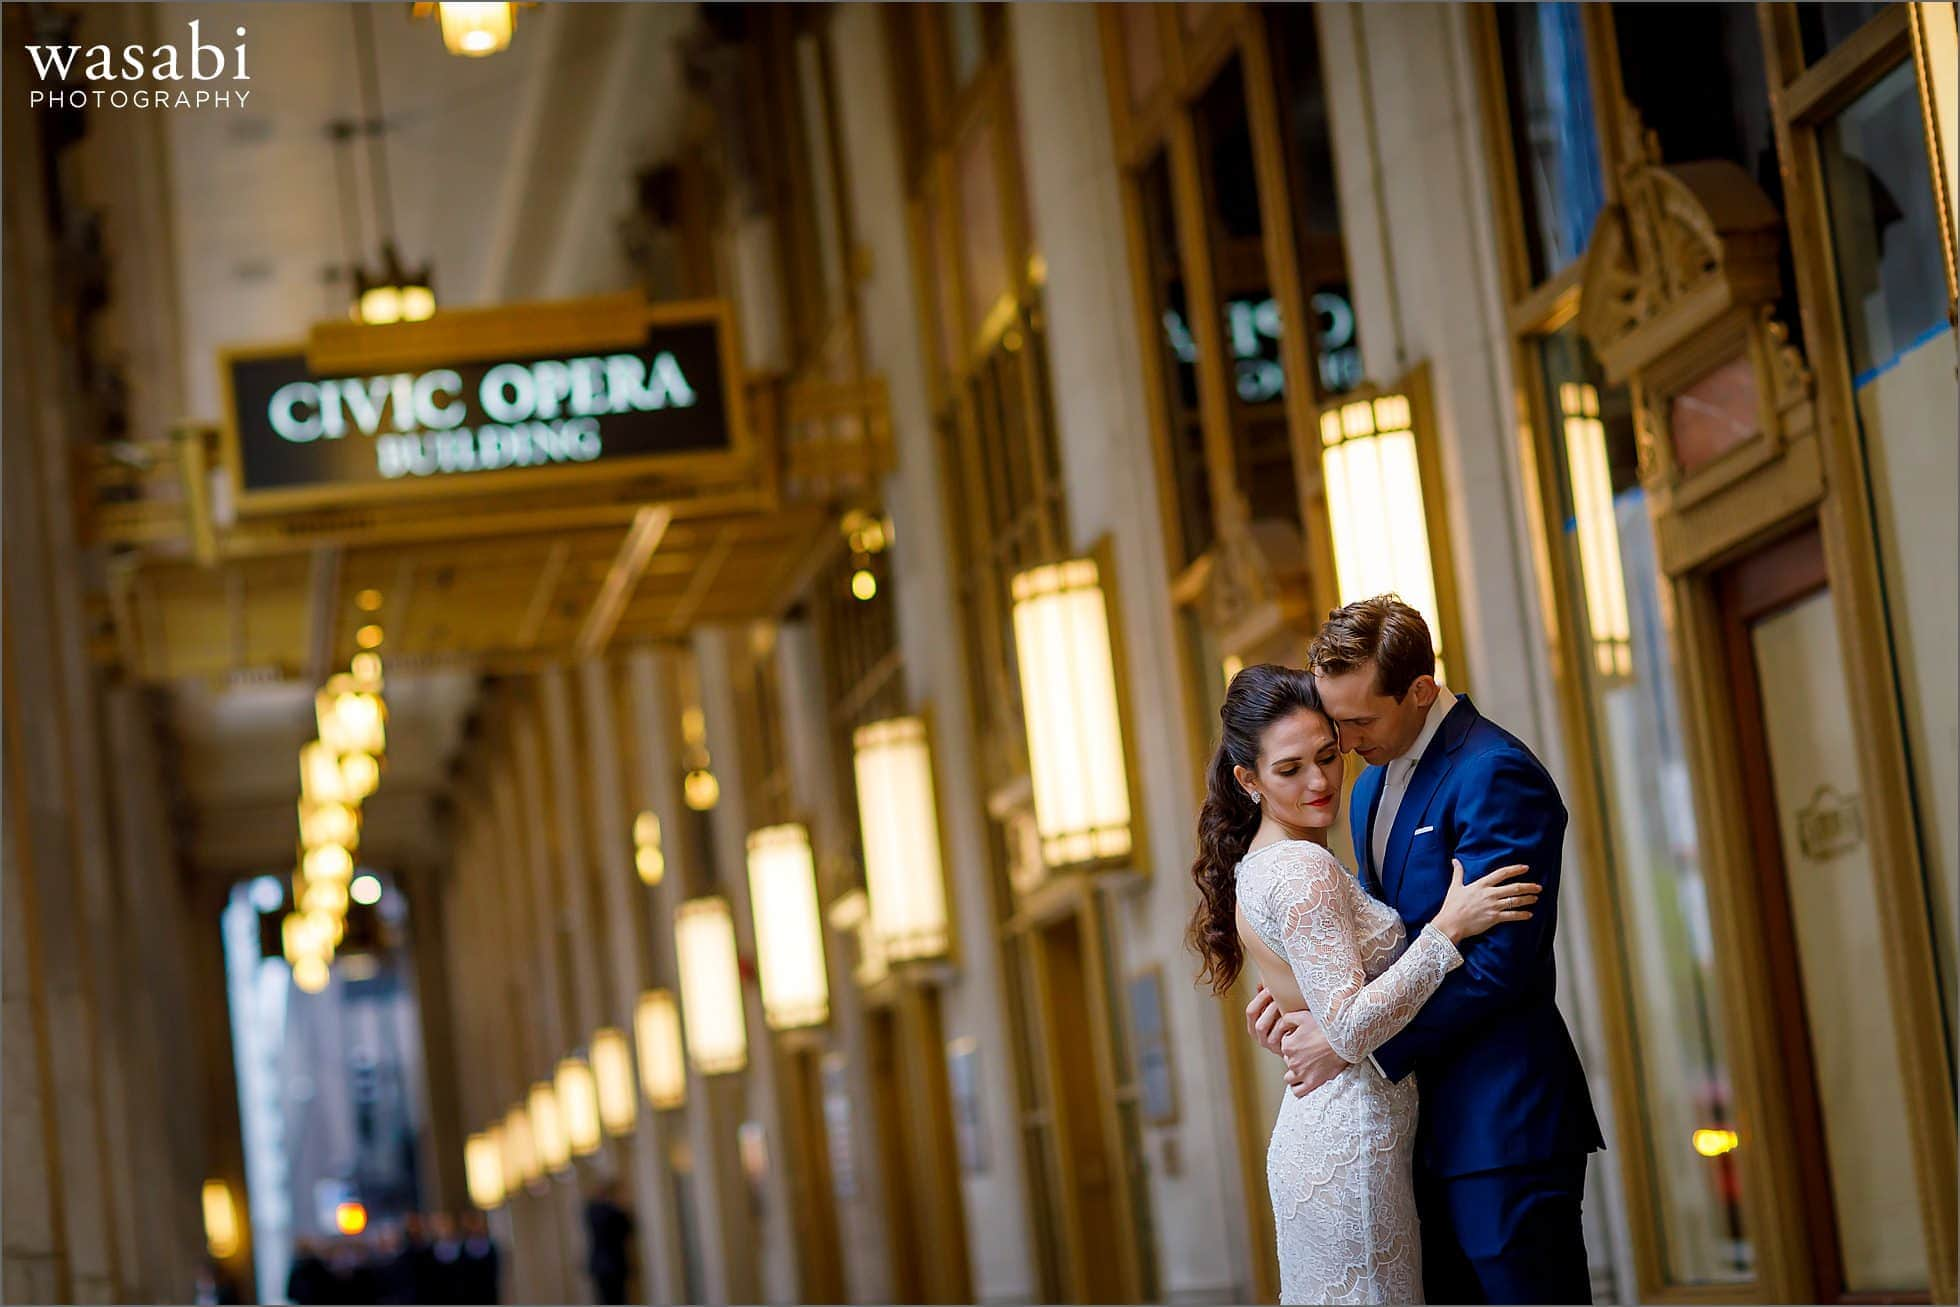 bride and groom pose for Civic Opera Building wedding portraits in Chicago